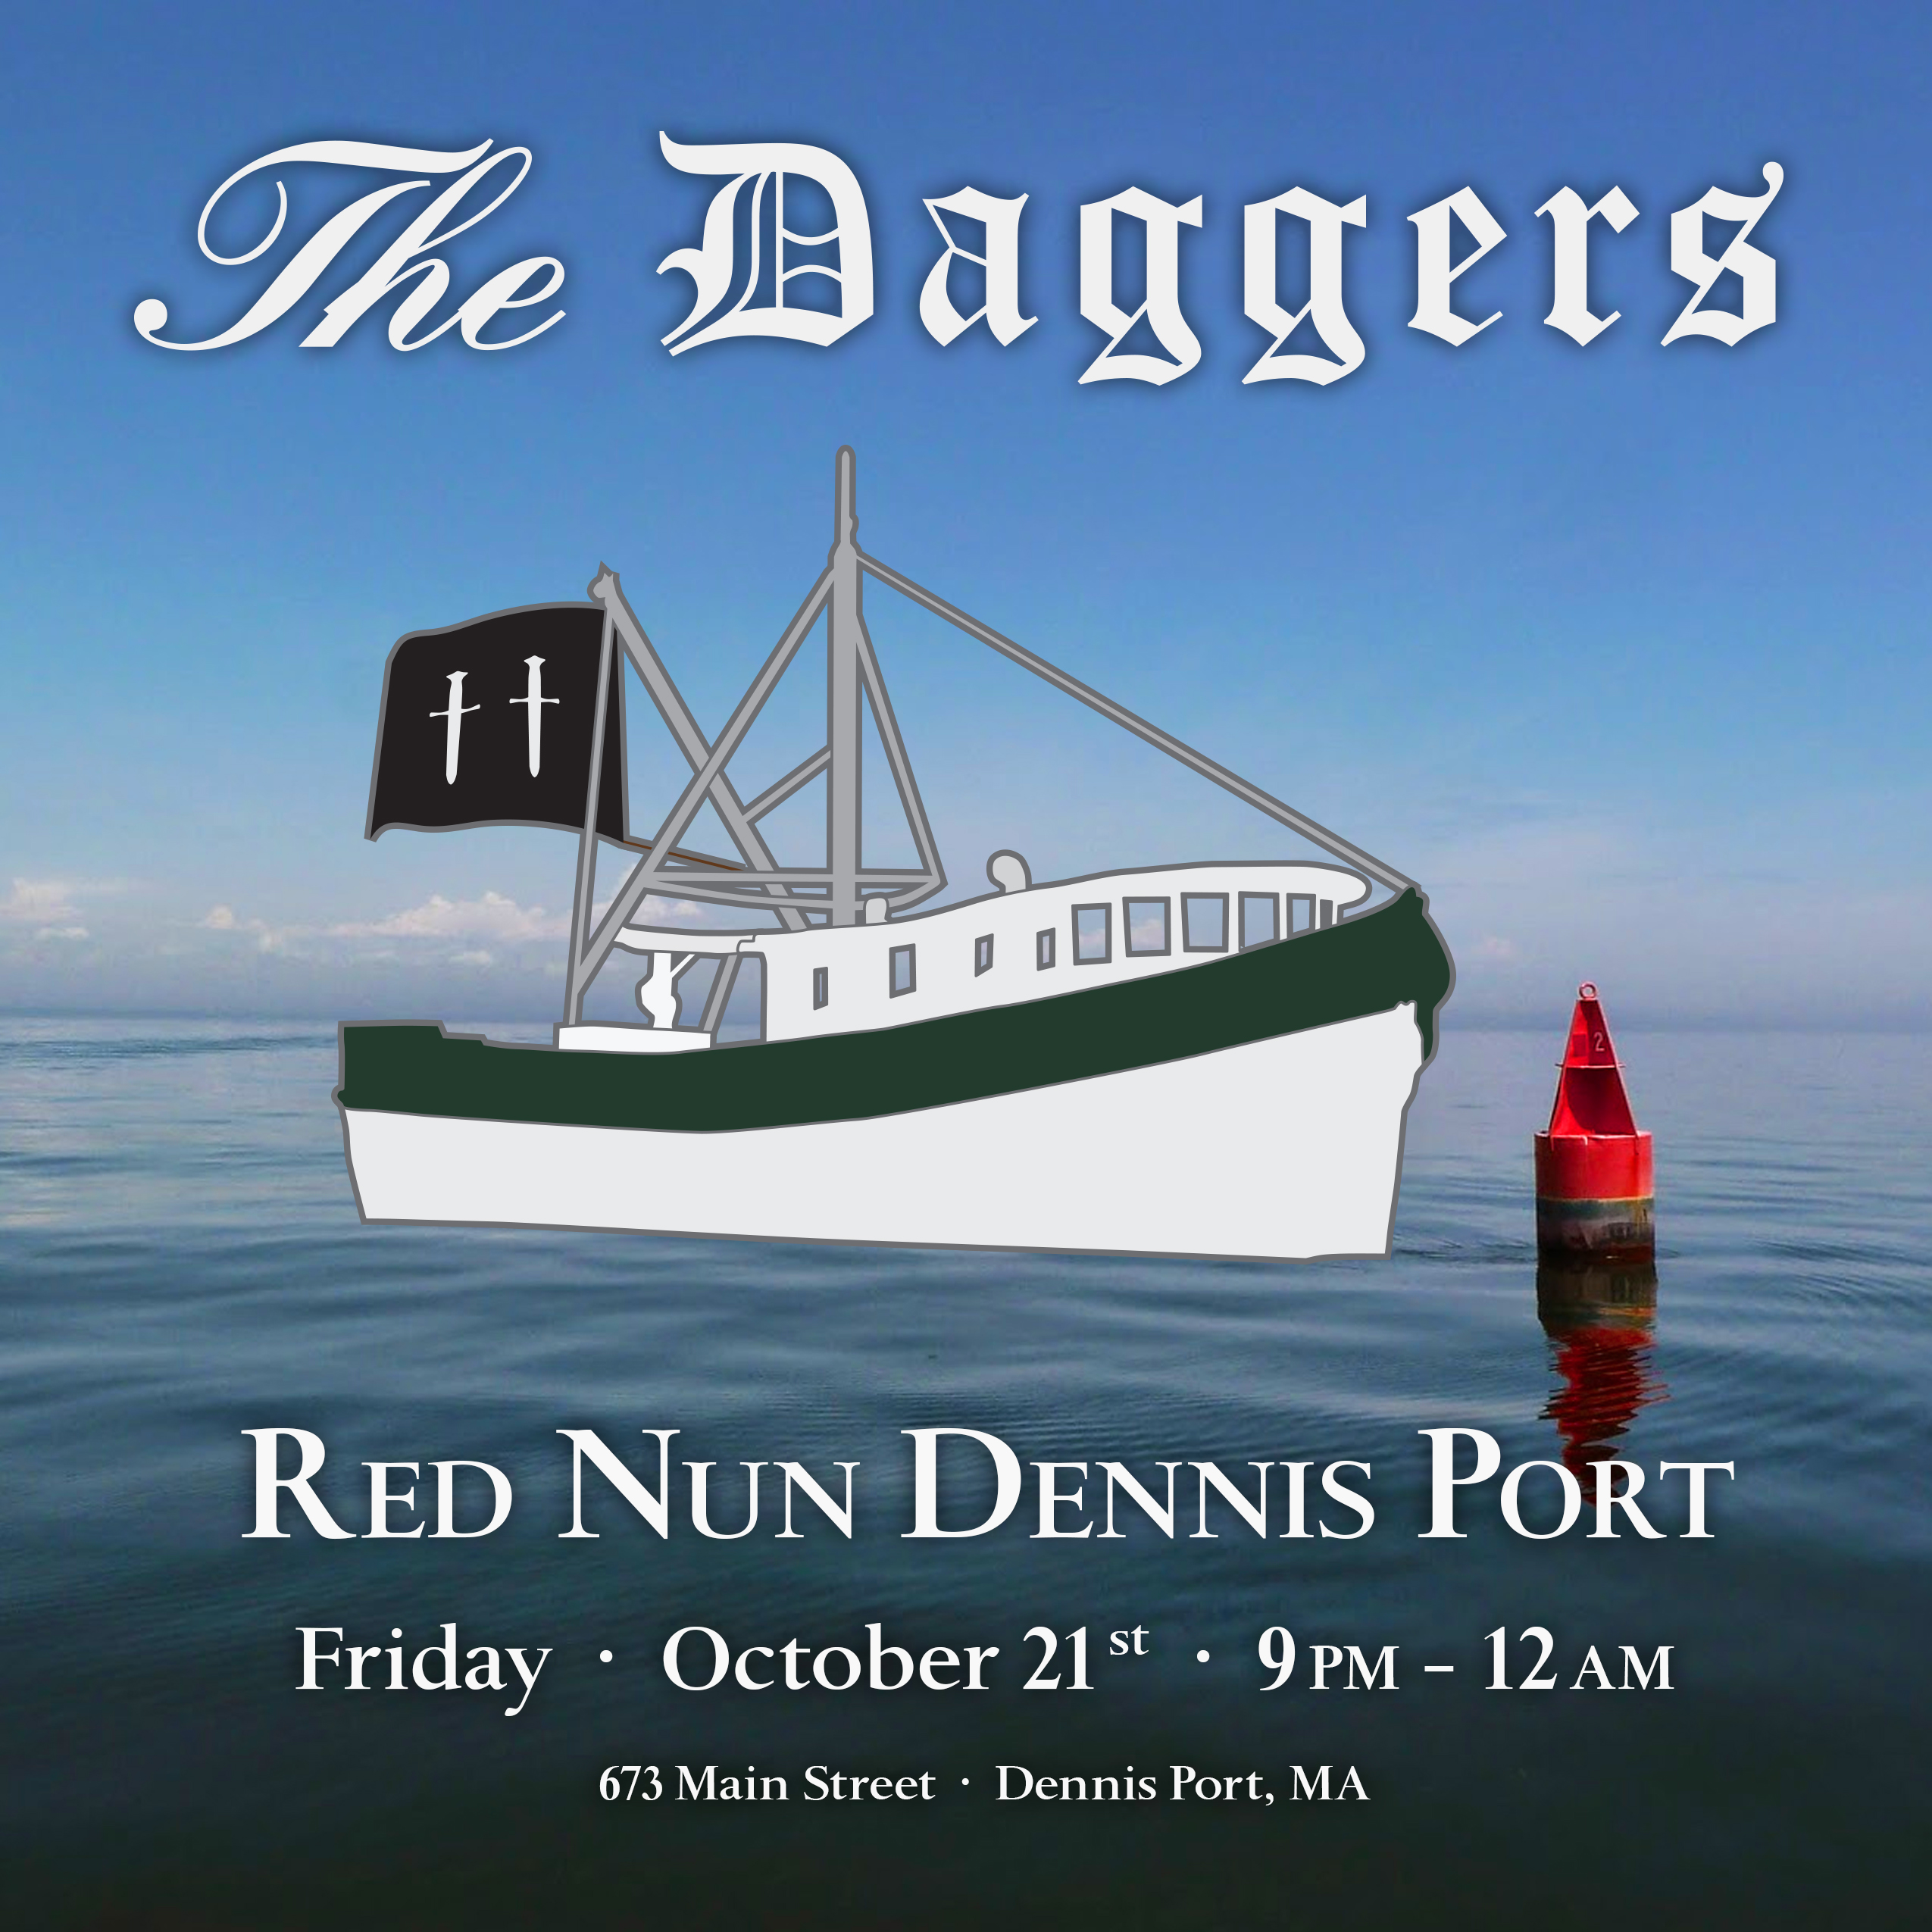 The Daggers At Red Nun Dennisport Presented By The Daggers